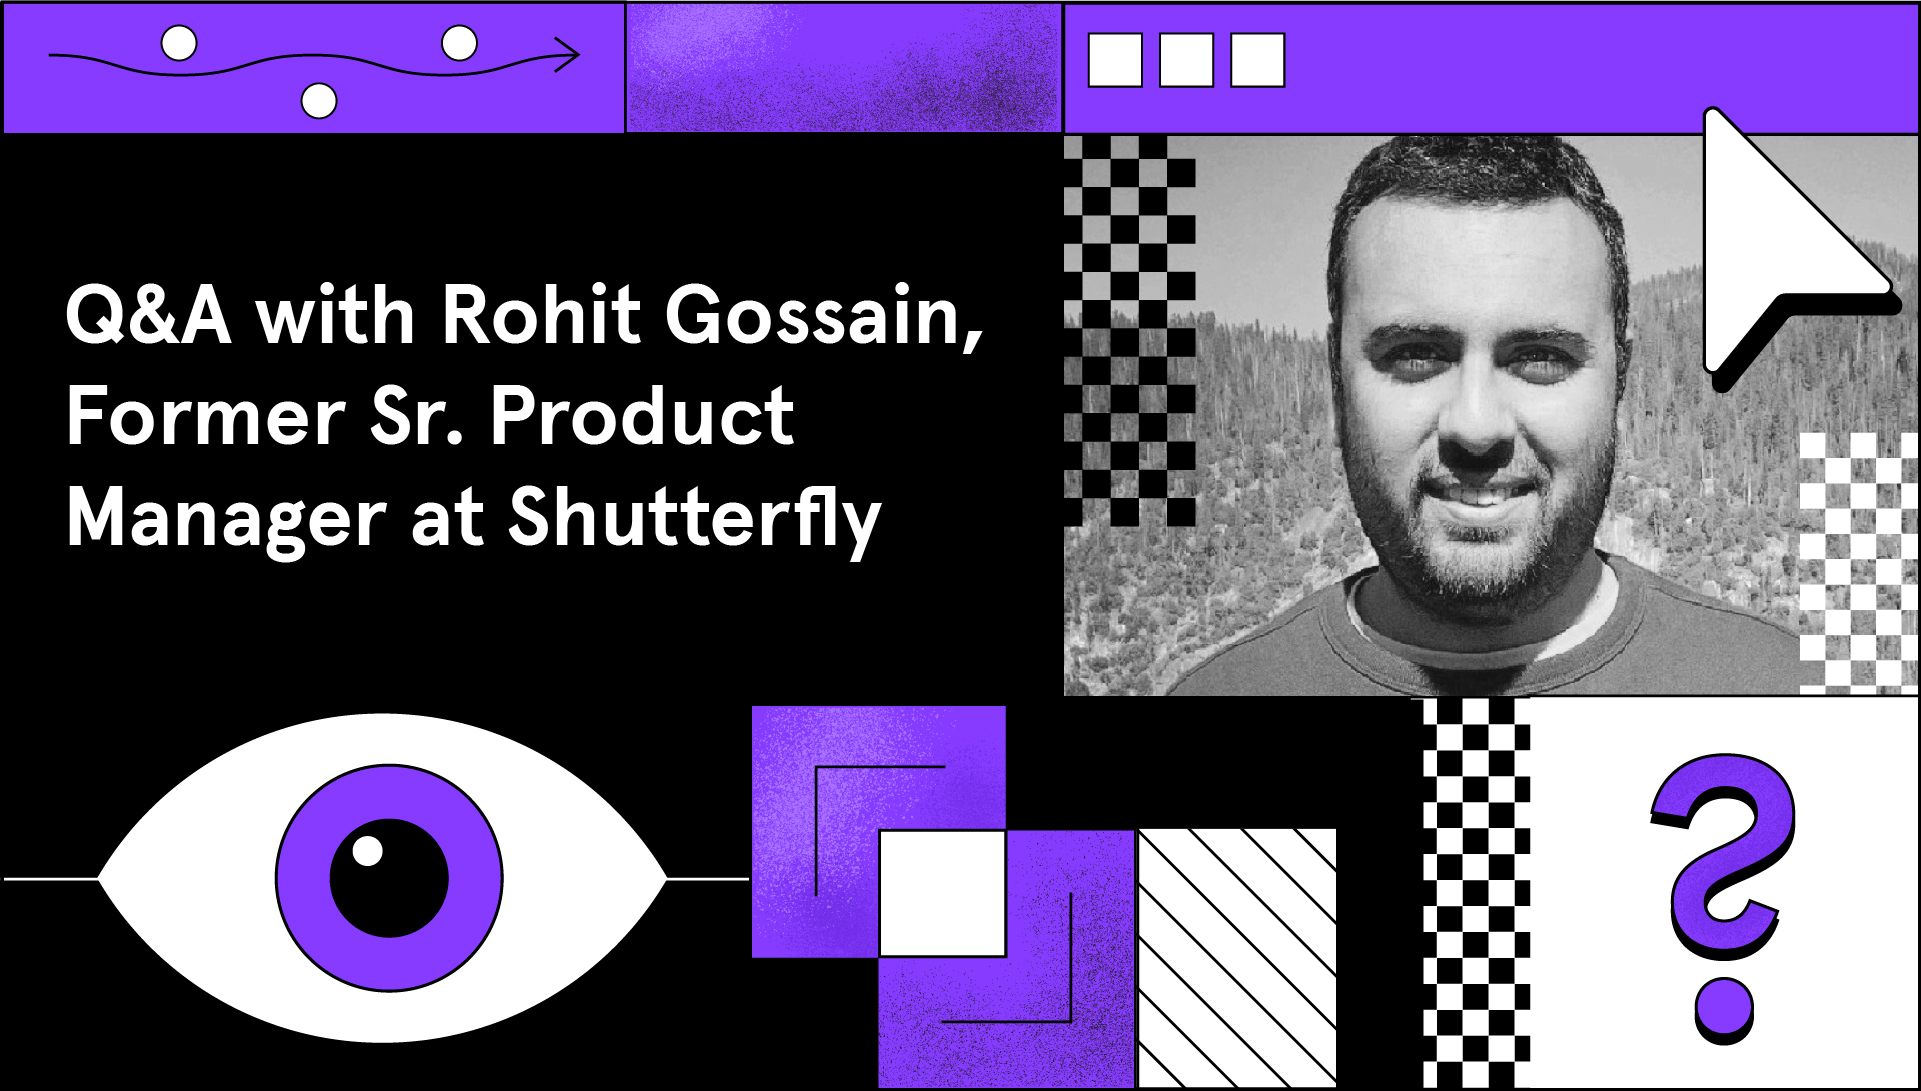 mixpanel q&a with rohit gossain